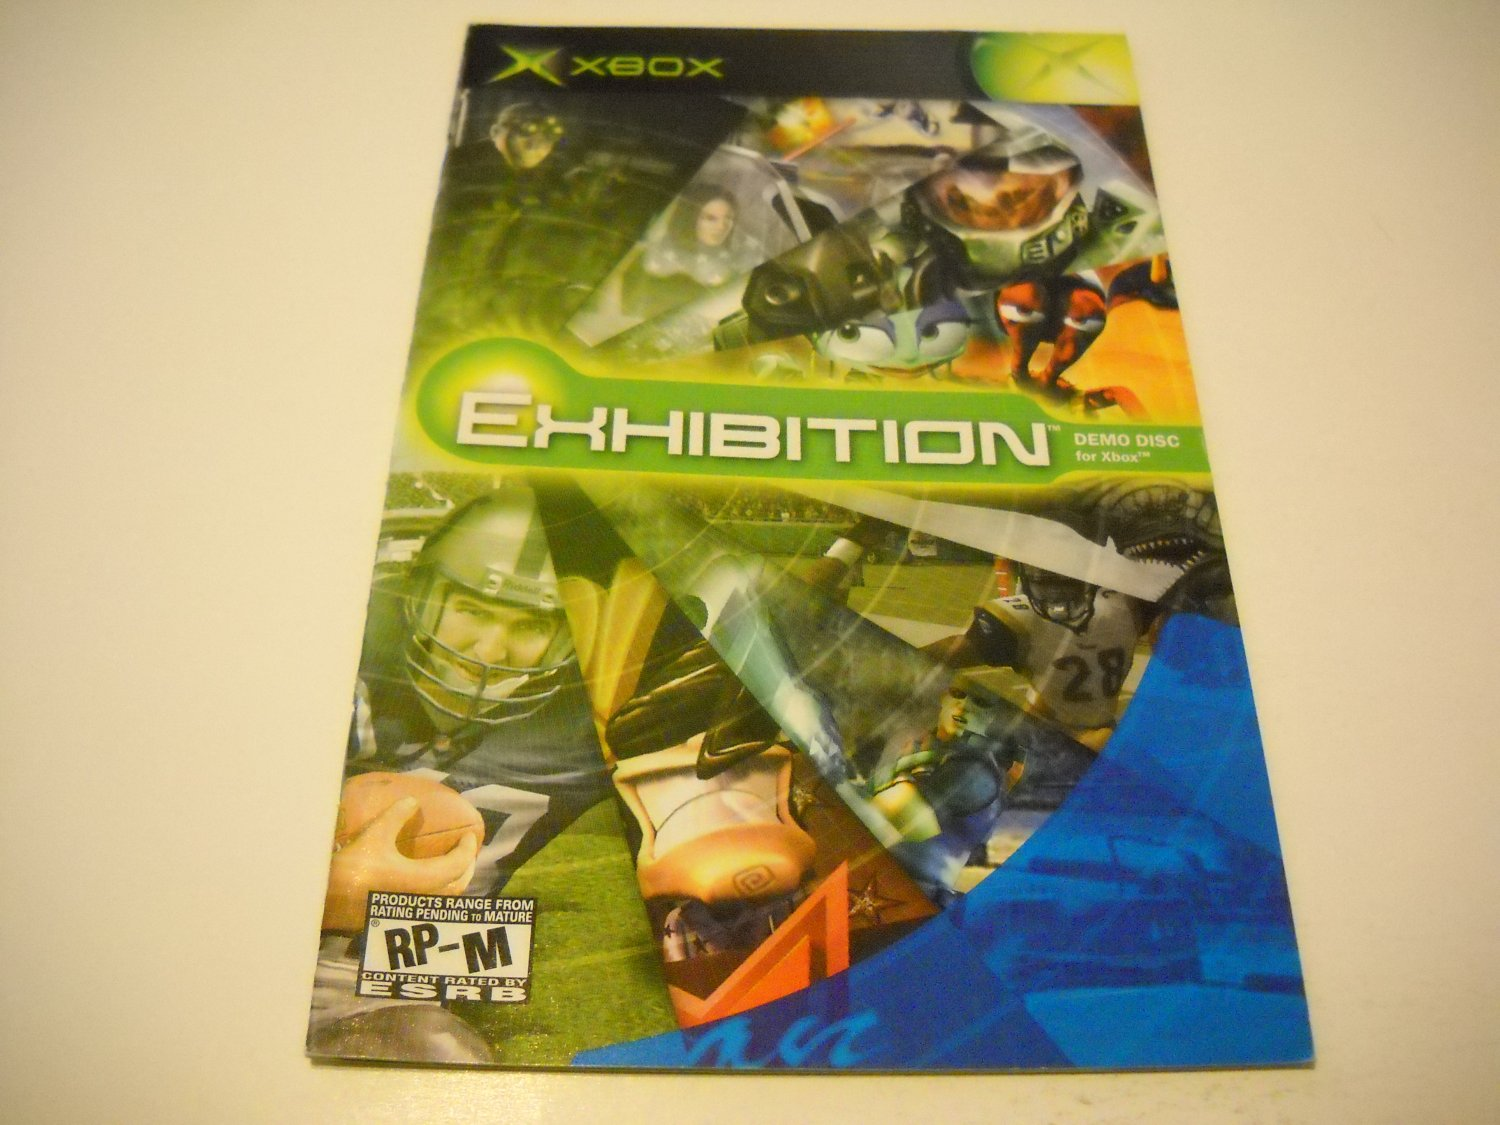 Manual ONLY ~  for Exhibition Demo Disc   Xbox